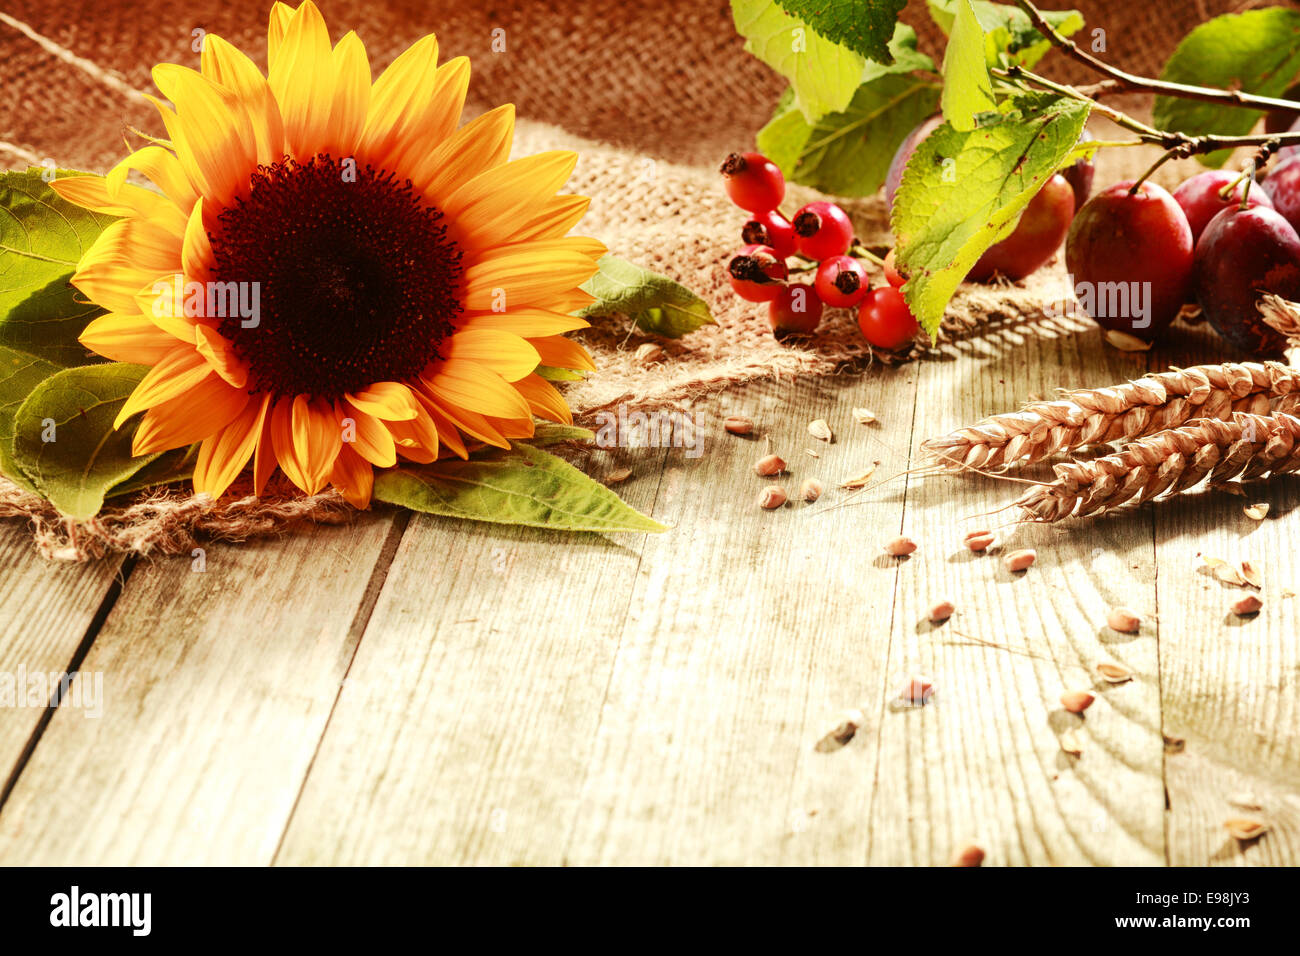 Colorful Rustic Thanksgiving Background With A Vibrant Yellow Sunflower Ears Of Ripe Wheat Rose Hips And Berries On Wooden Table Copyspace